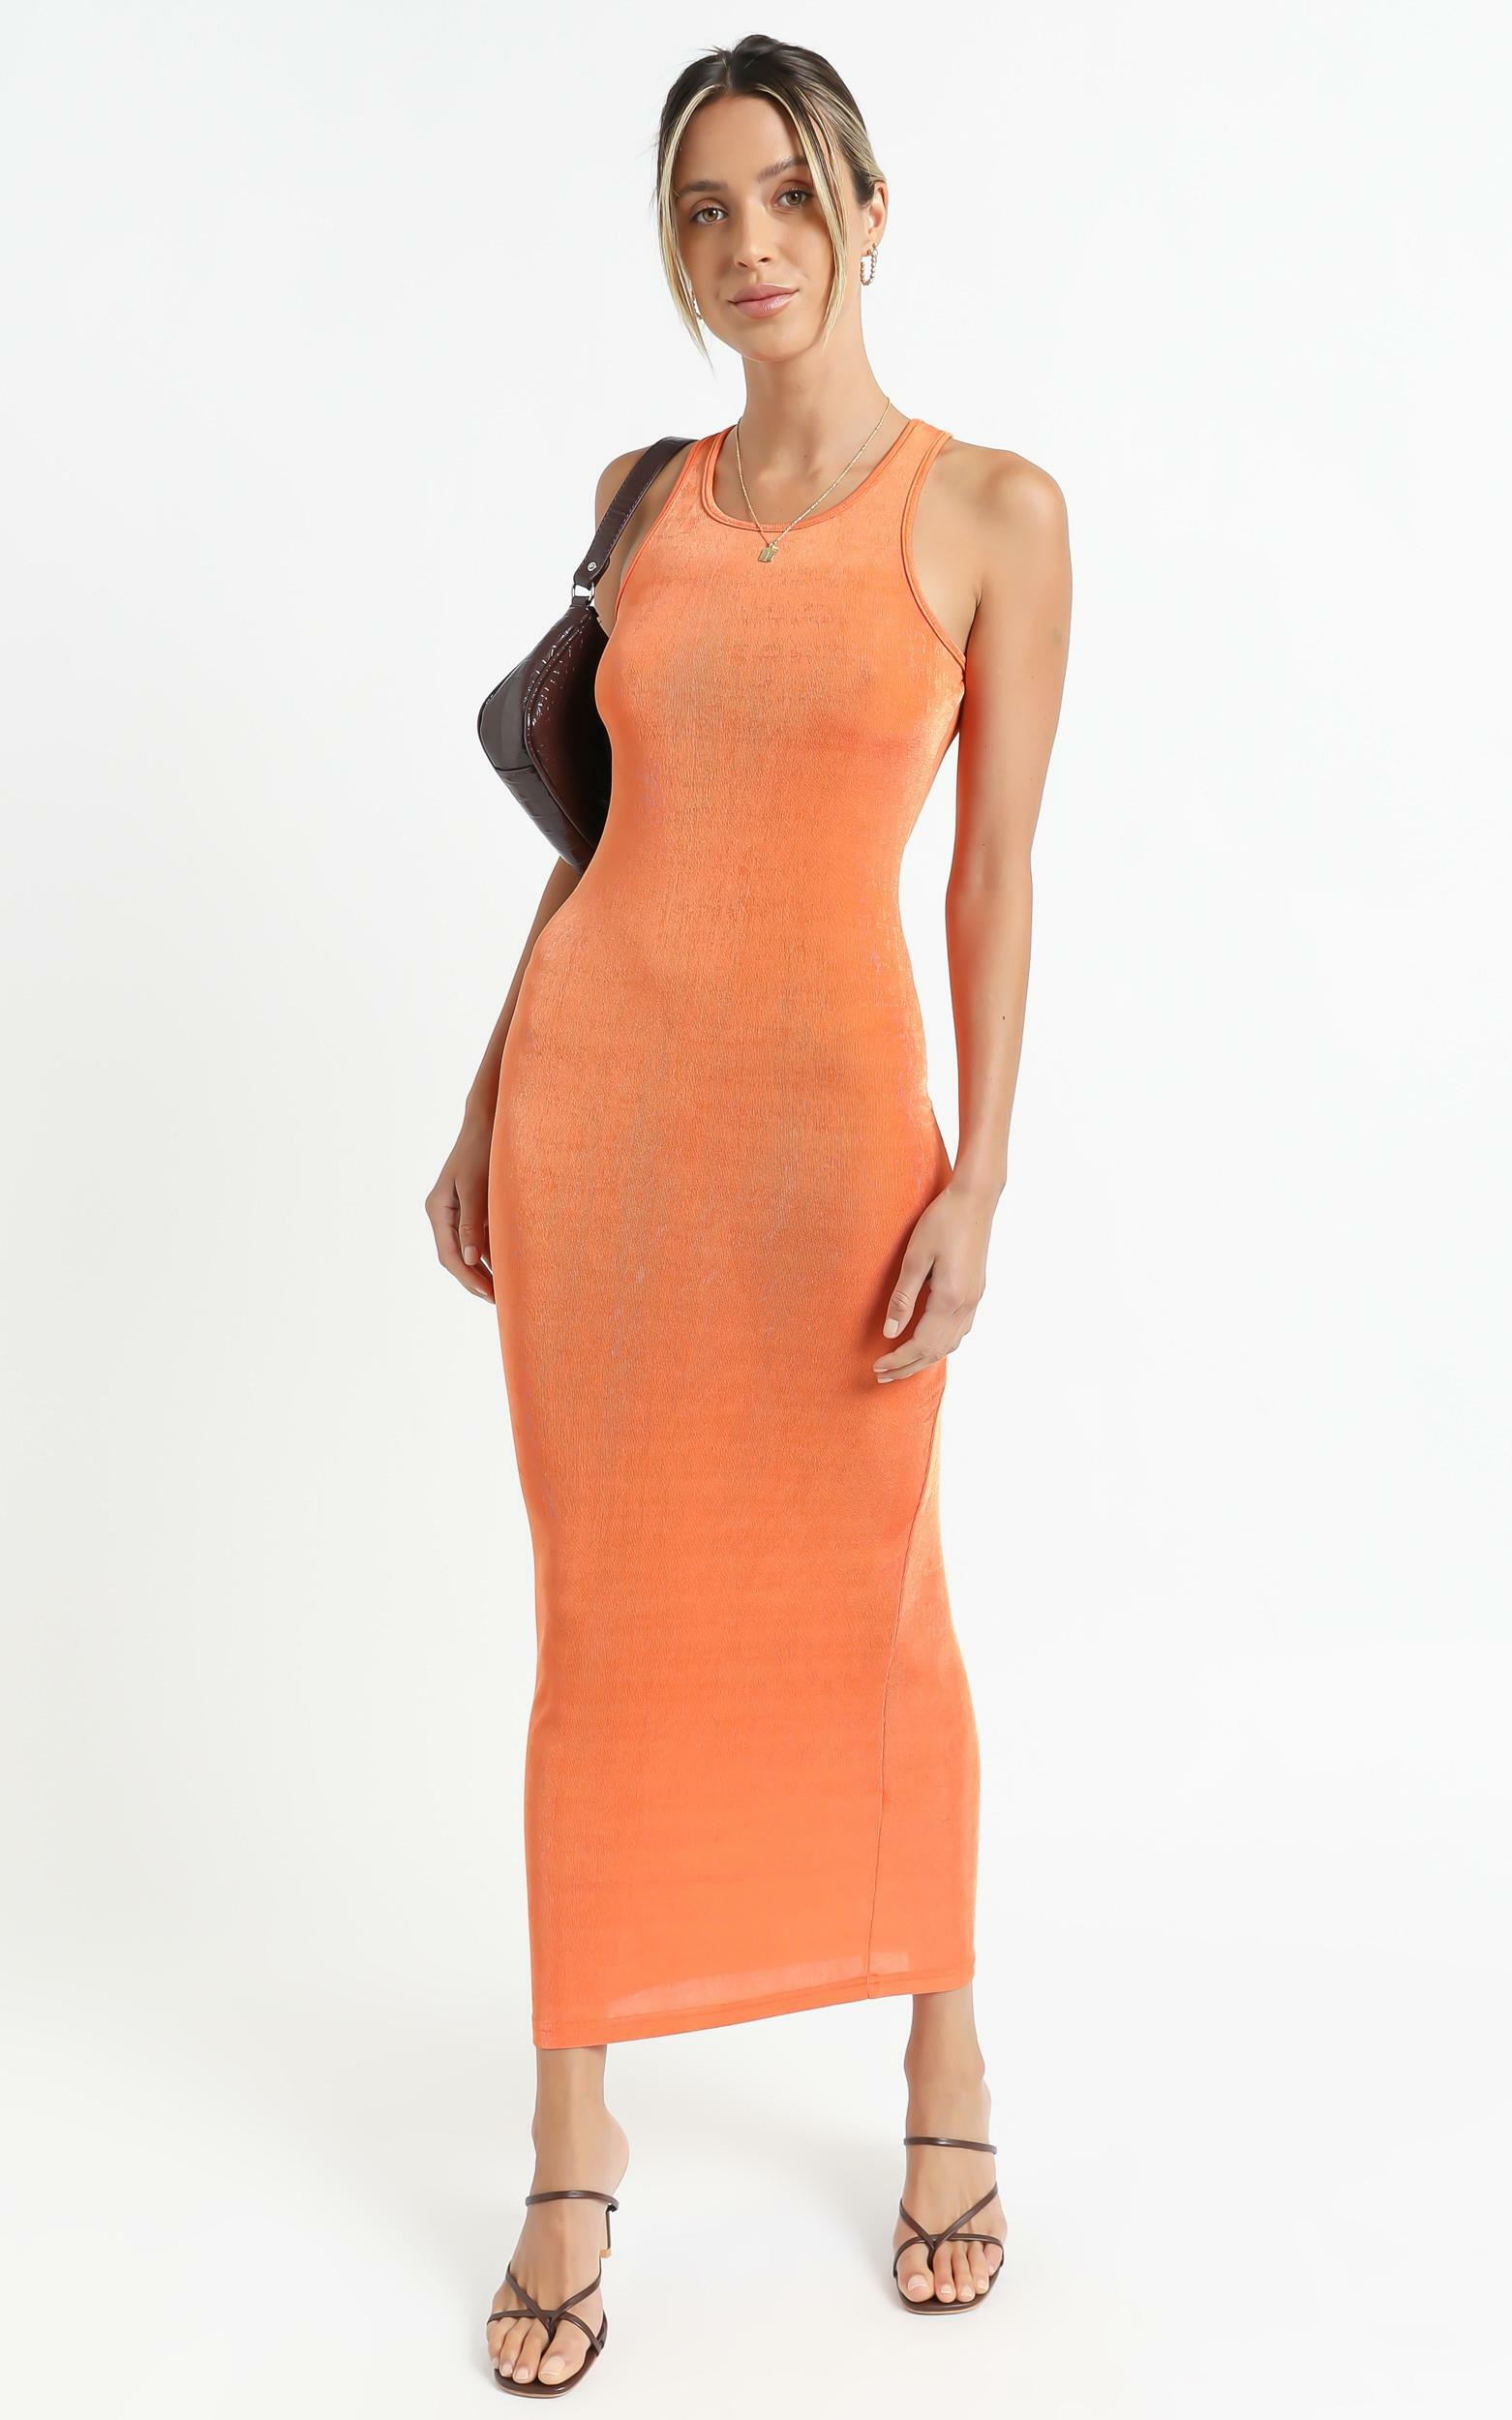 Lioness - Everlast Dress in Orange - XS, Orange, hi-res image number null